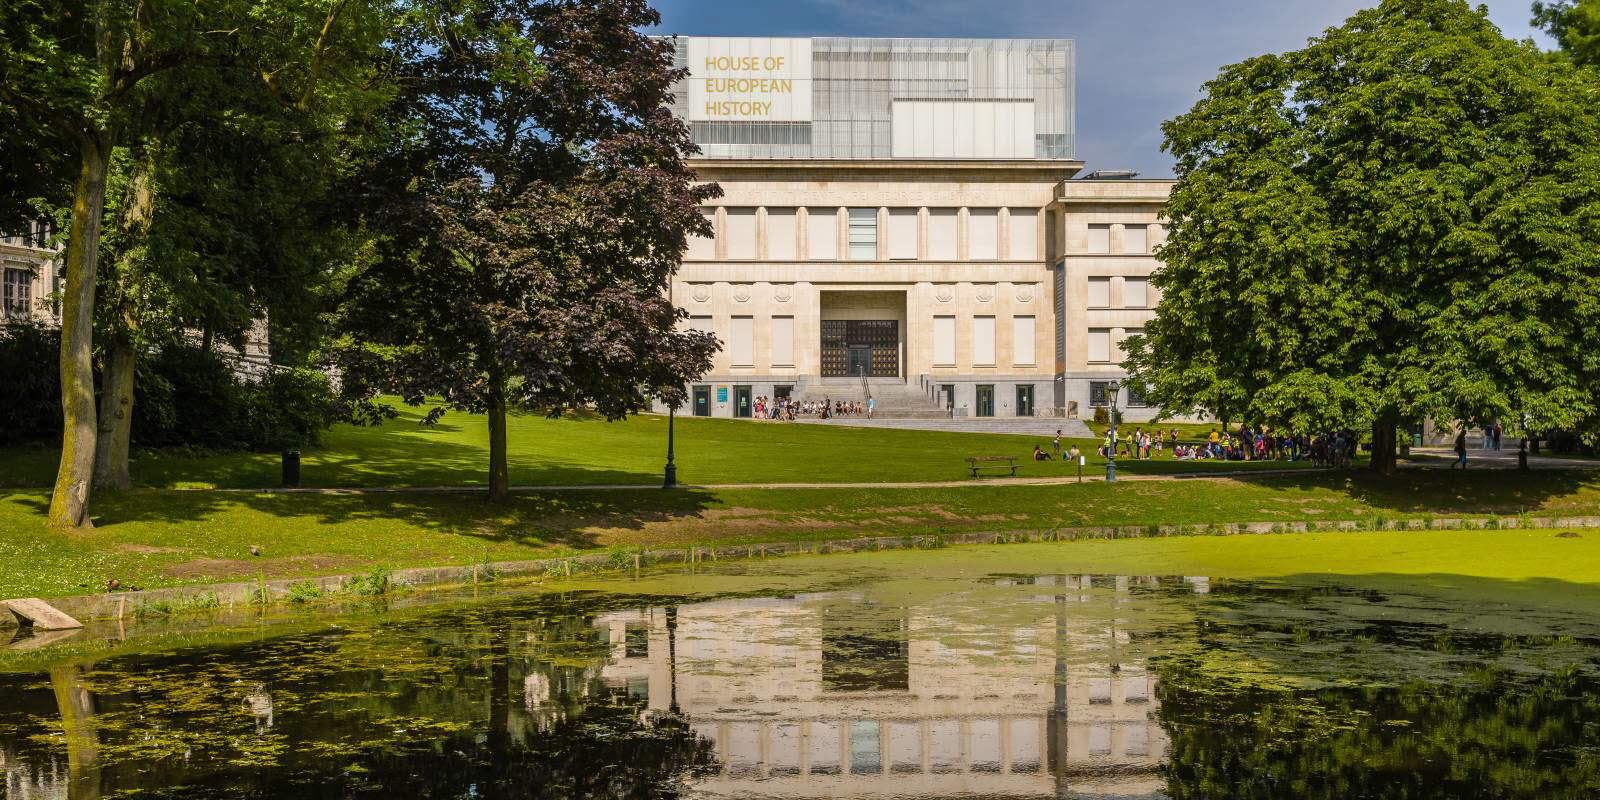 House of European history with green garden sorounding in Brussels